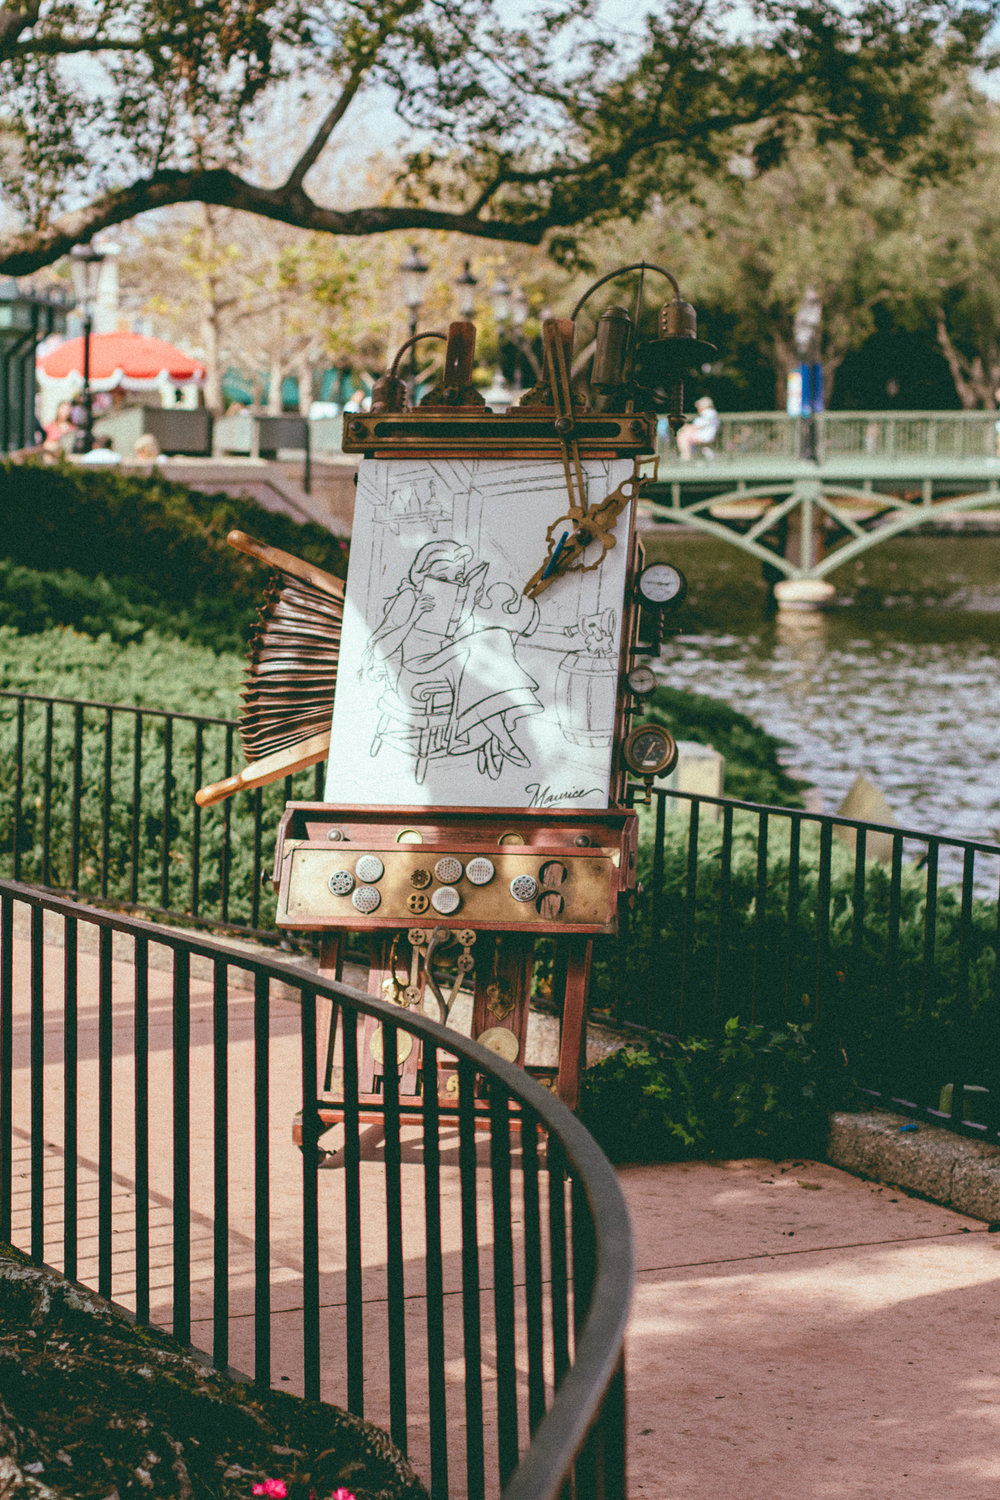 While visiting the Pavilions, be sure to find character easels.